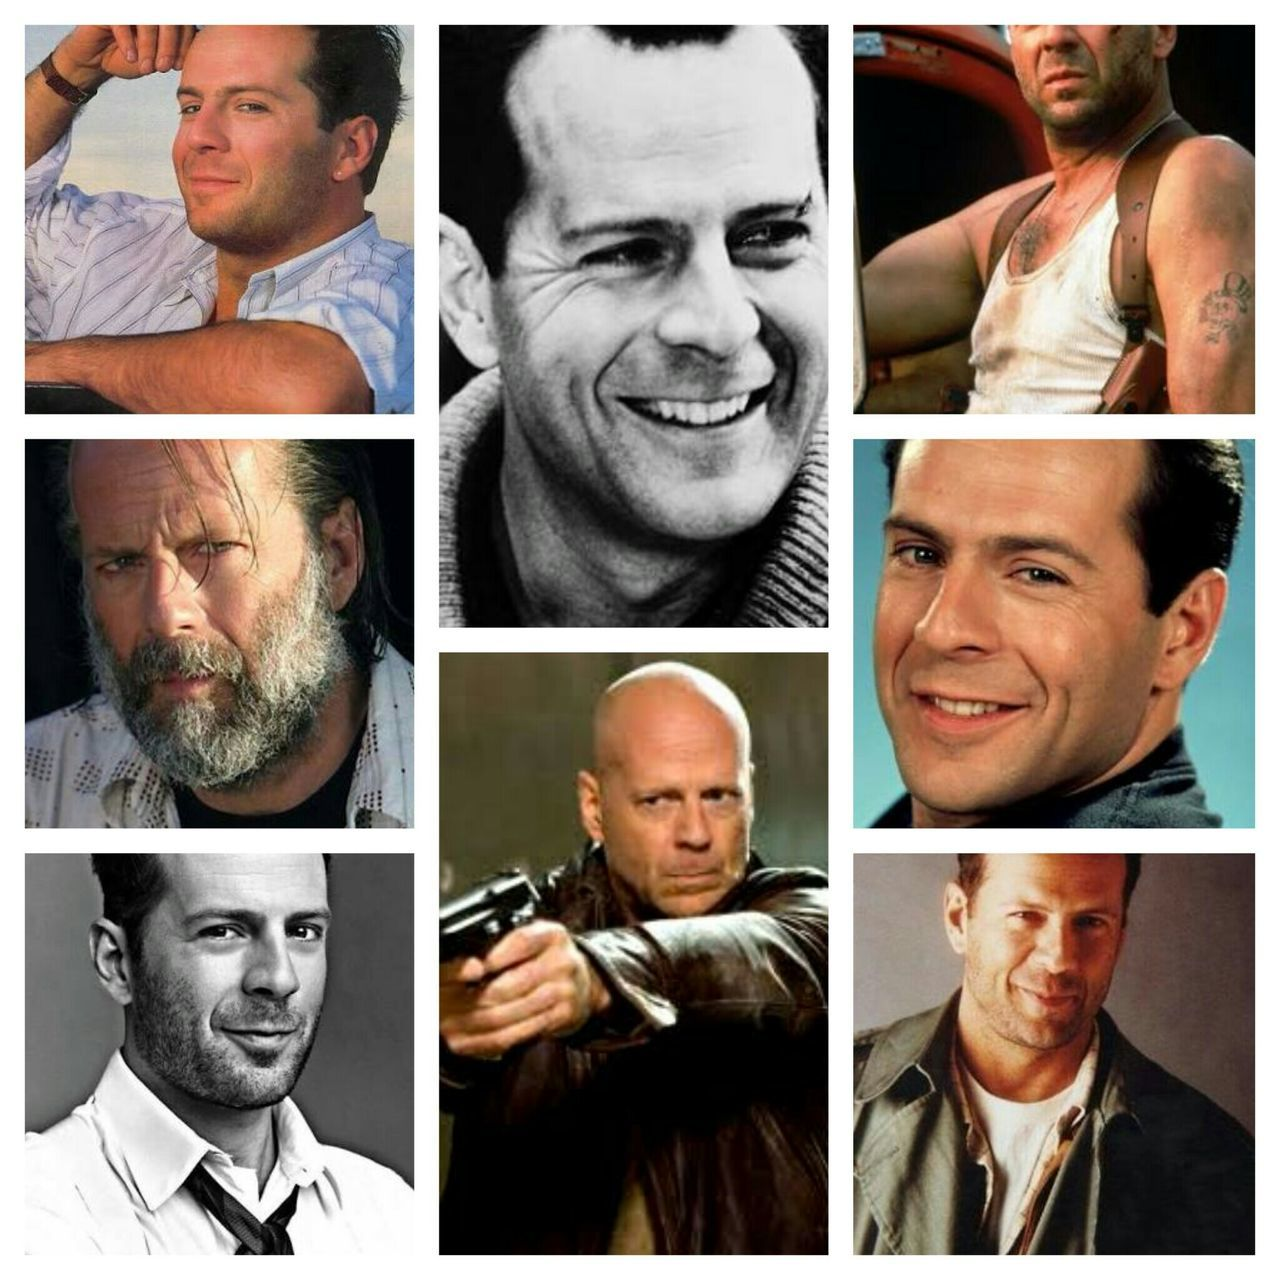 Mybeautiful Love ♥ Oldlove😉😍😍😍❤❤❤❤❤❤👀❤❤❤❤❤❤👀👀👀👀👀❤❤❤💋💋💋💋💋❤❤❤💕💓💓💓💓💓 Brucewillis 👍👍👍👍👍👍👍👍